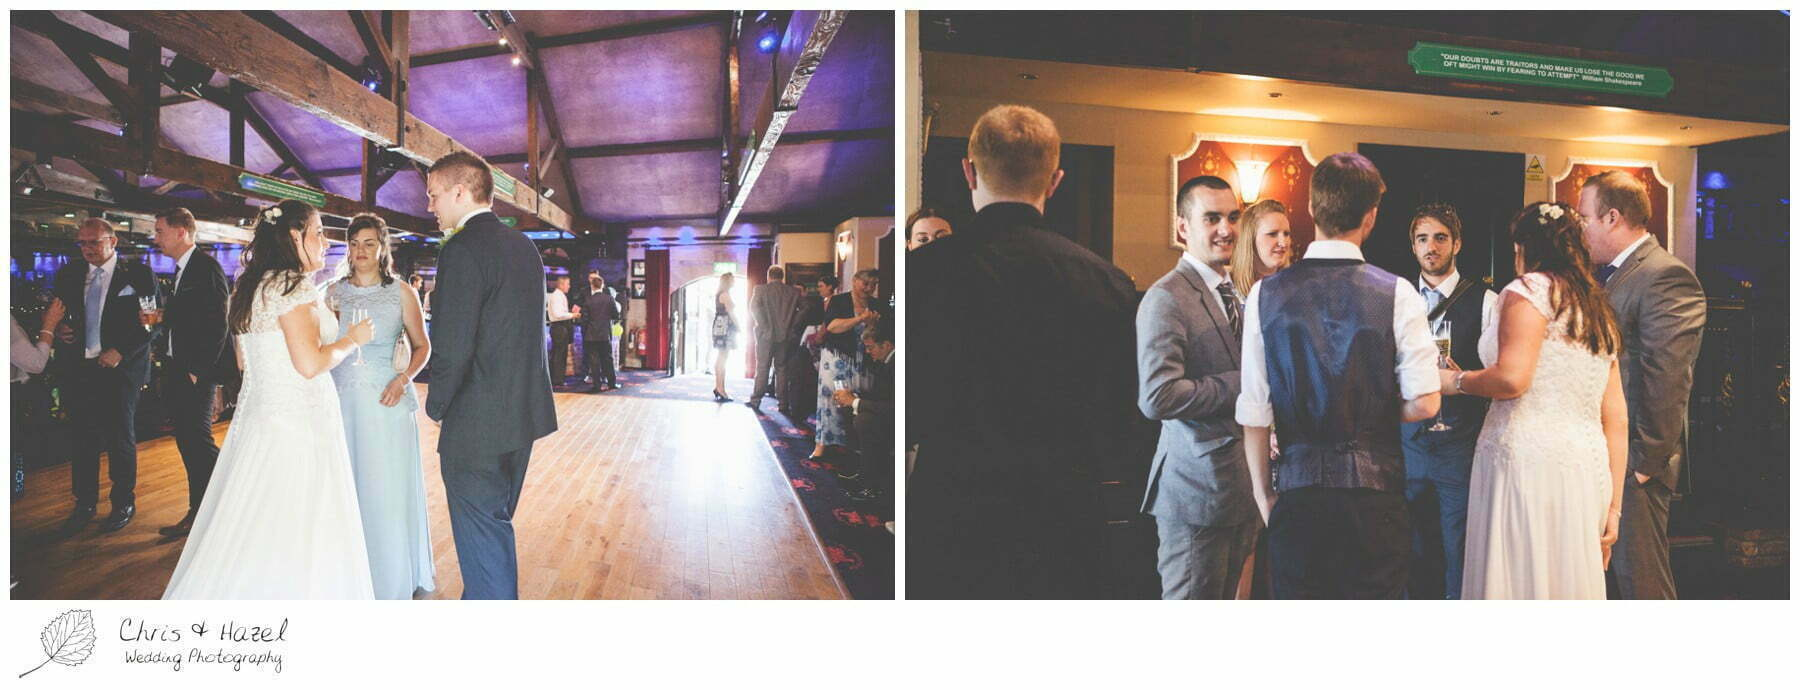 Wedding guests documentary wedding photography, wedding, south milford Wedding Photographer, the engine shed, wetherby wedding venue, Wedding Photography wetherby, Chris and Hazel Wedding Photography, stevie pollard, stevie standerline, paul standerline,